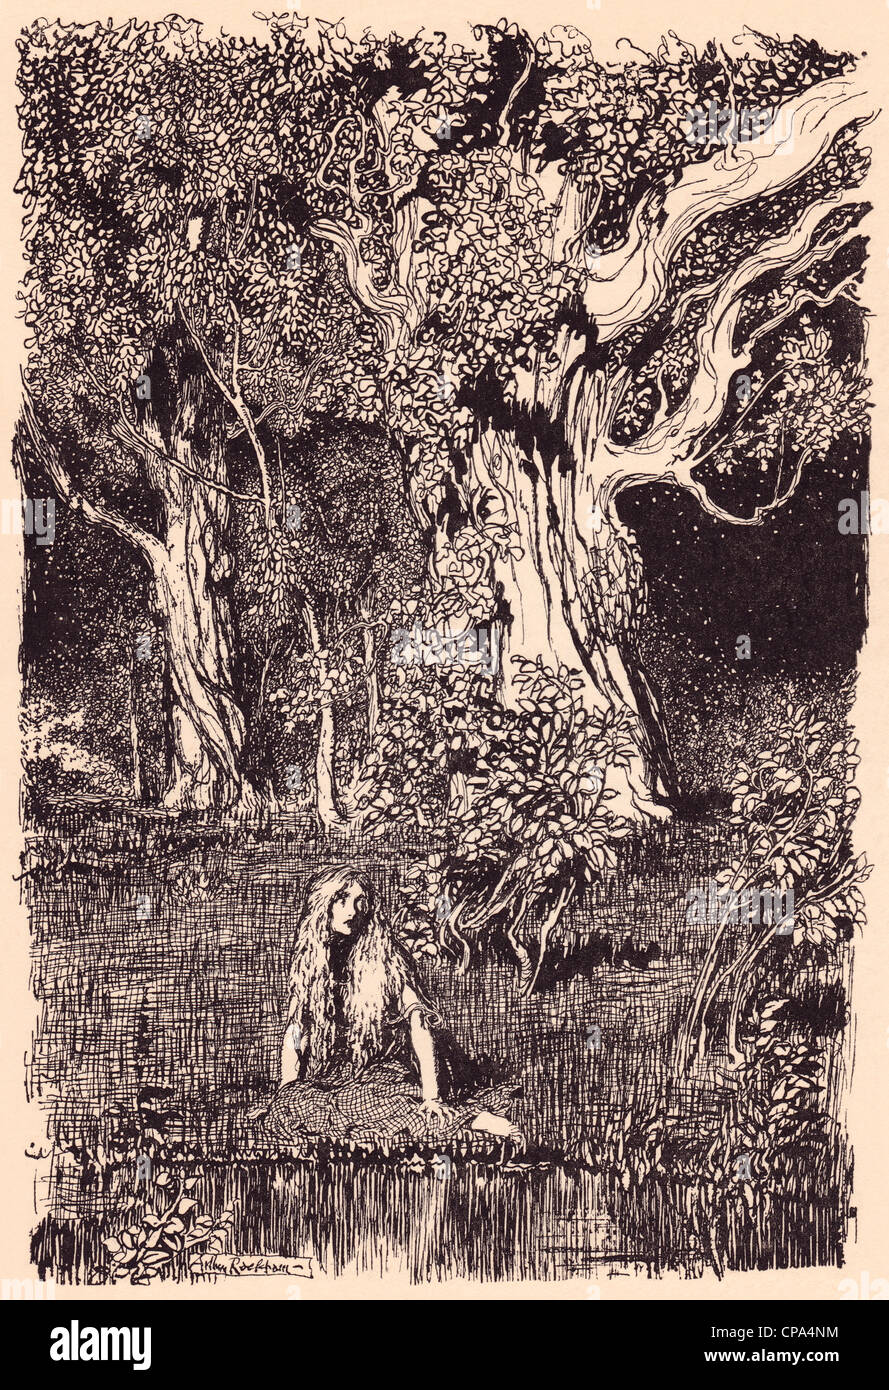 Illustration by Arthur Rackham from Grimm's Fairy Tale The Goose Girl at the Well. - Stock Image